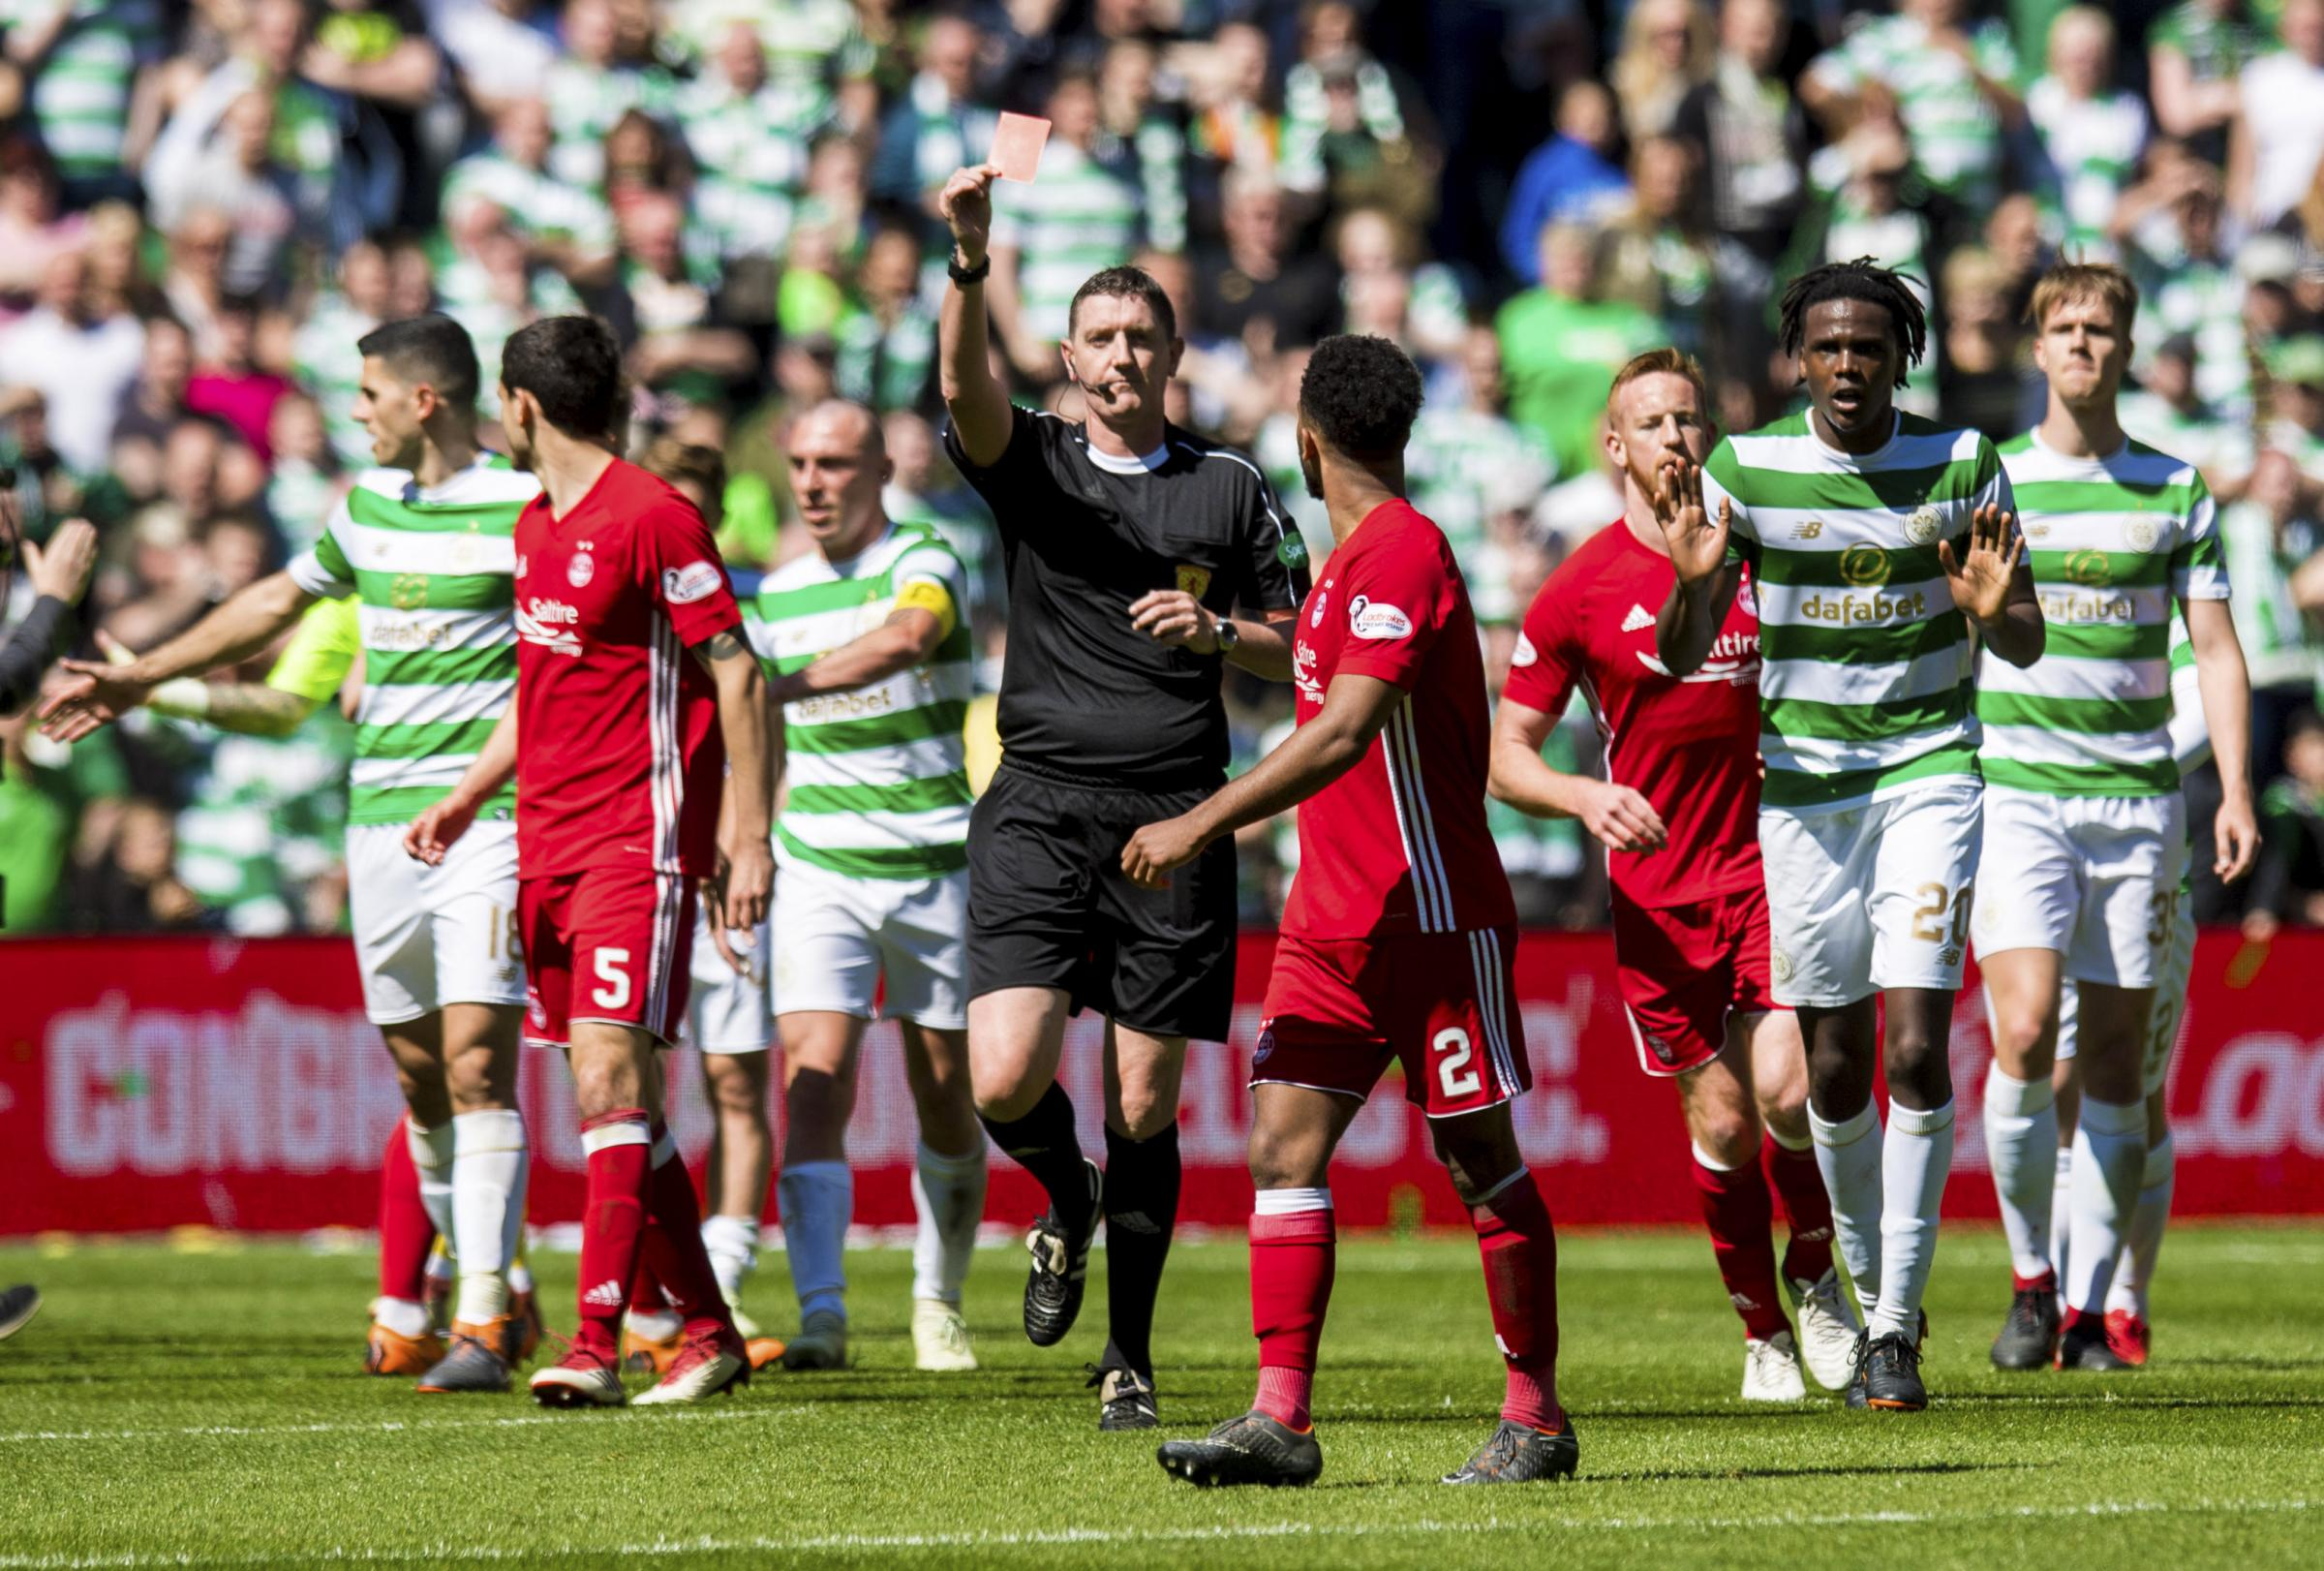 13/05/18 LADBROKES PREMIERSHIP. CELTIC v ABERDEEN. CELTIC PARK - GLASGOW . Aberdeen's Shay Logan exchanges words with the Celtic players as he is shown a red card by referee Craig Thomson.